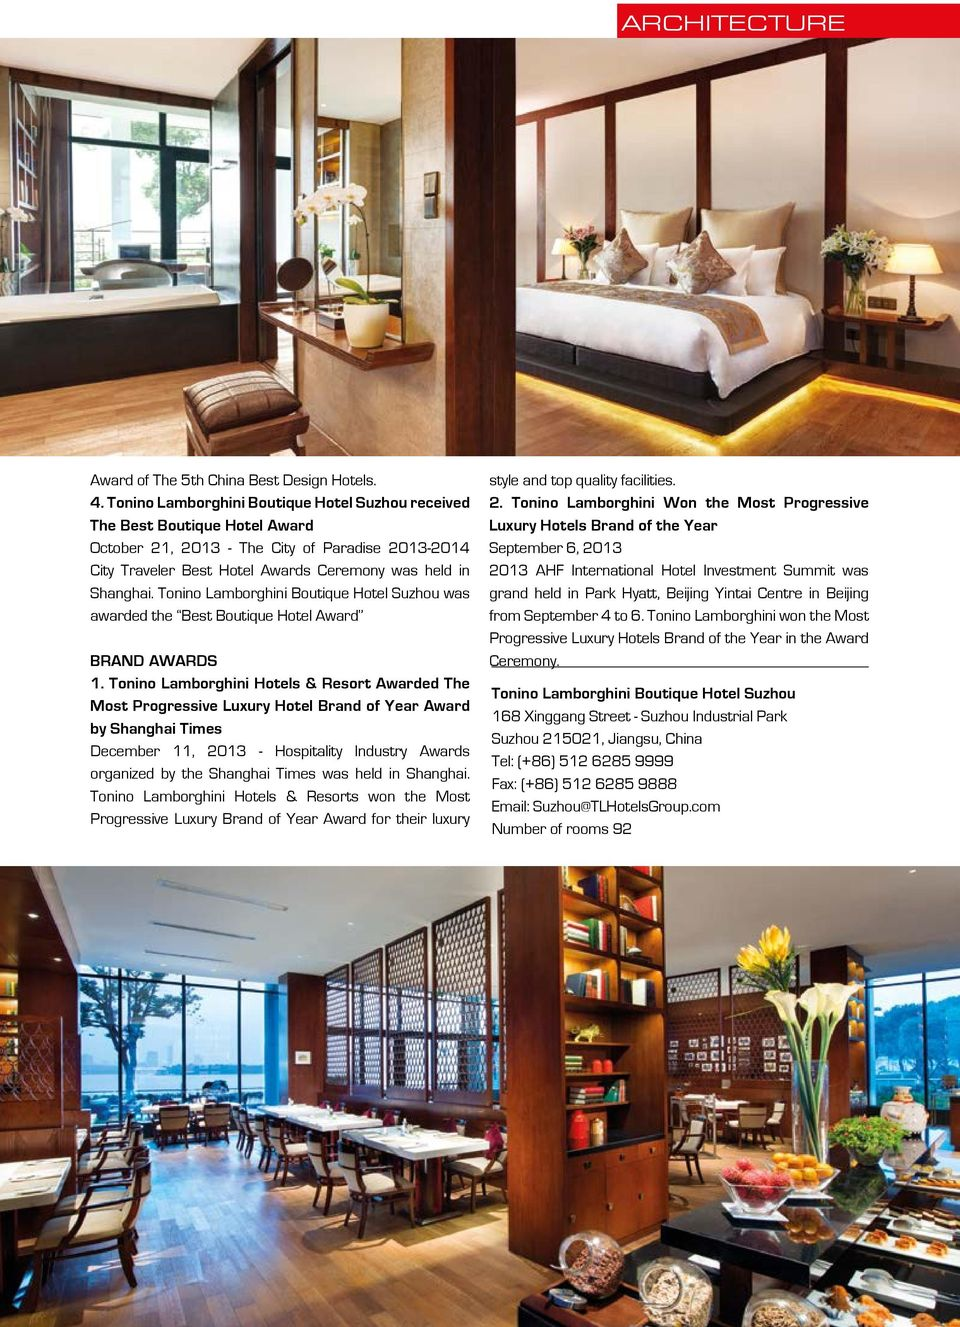 Tonino Lamborghini Boutique Hotel Suzhou was awarded the Best Boutique Hotel Award BRAND AWARDS 1.